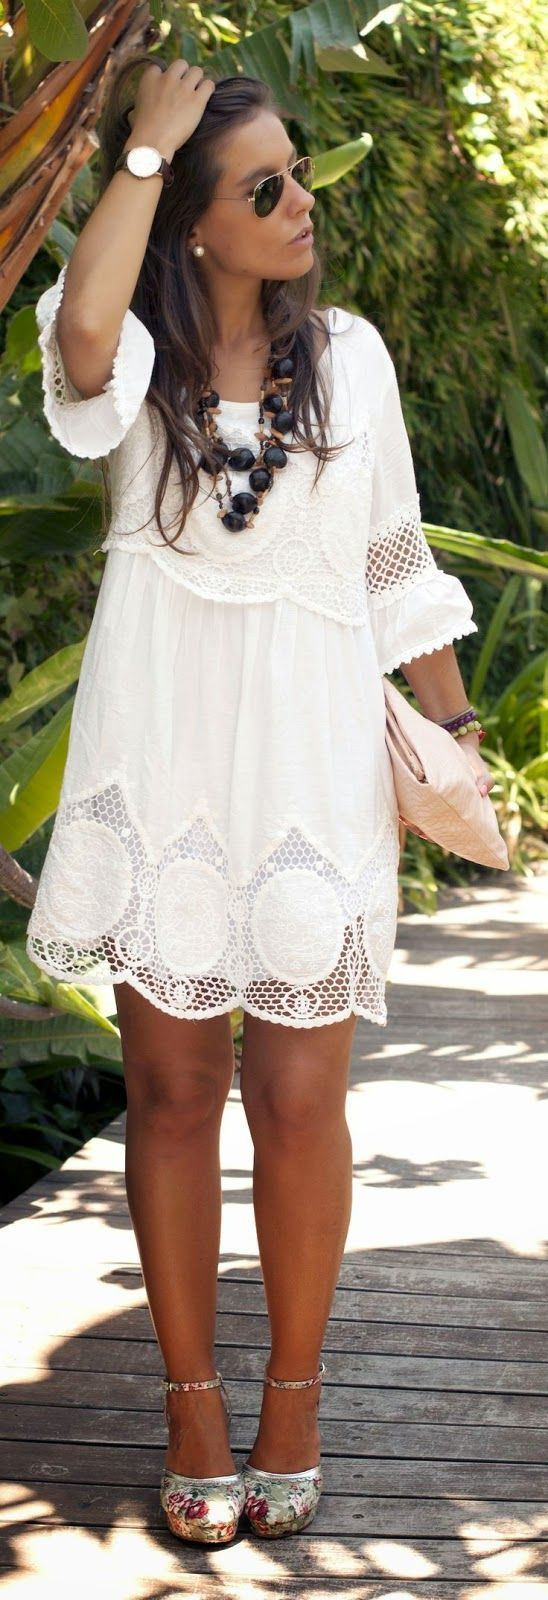 White Lace Boho Chic Style Dress Cute Floral Pattern Shoes Summer Look 2015 -- This is totally cute!